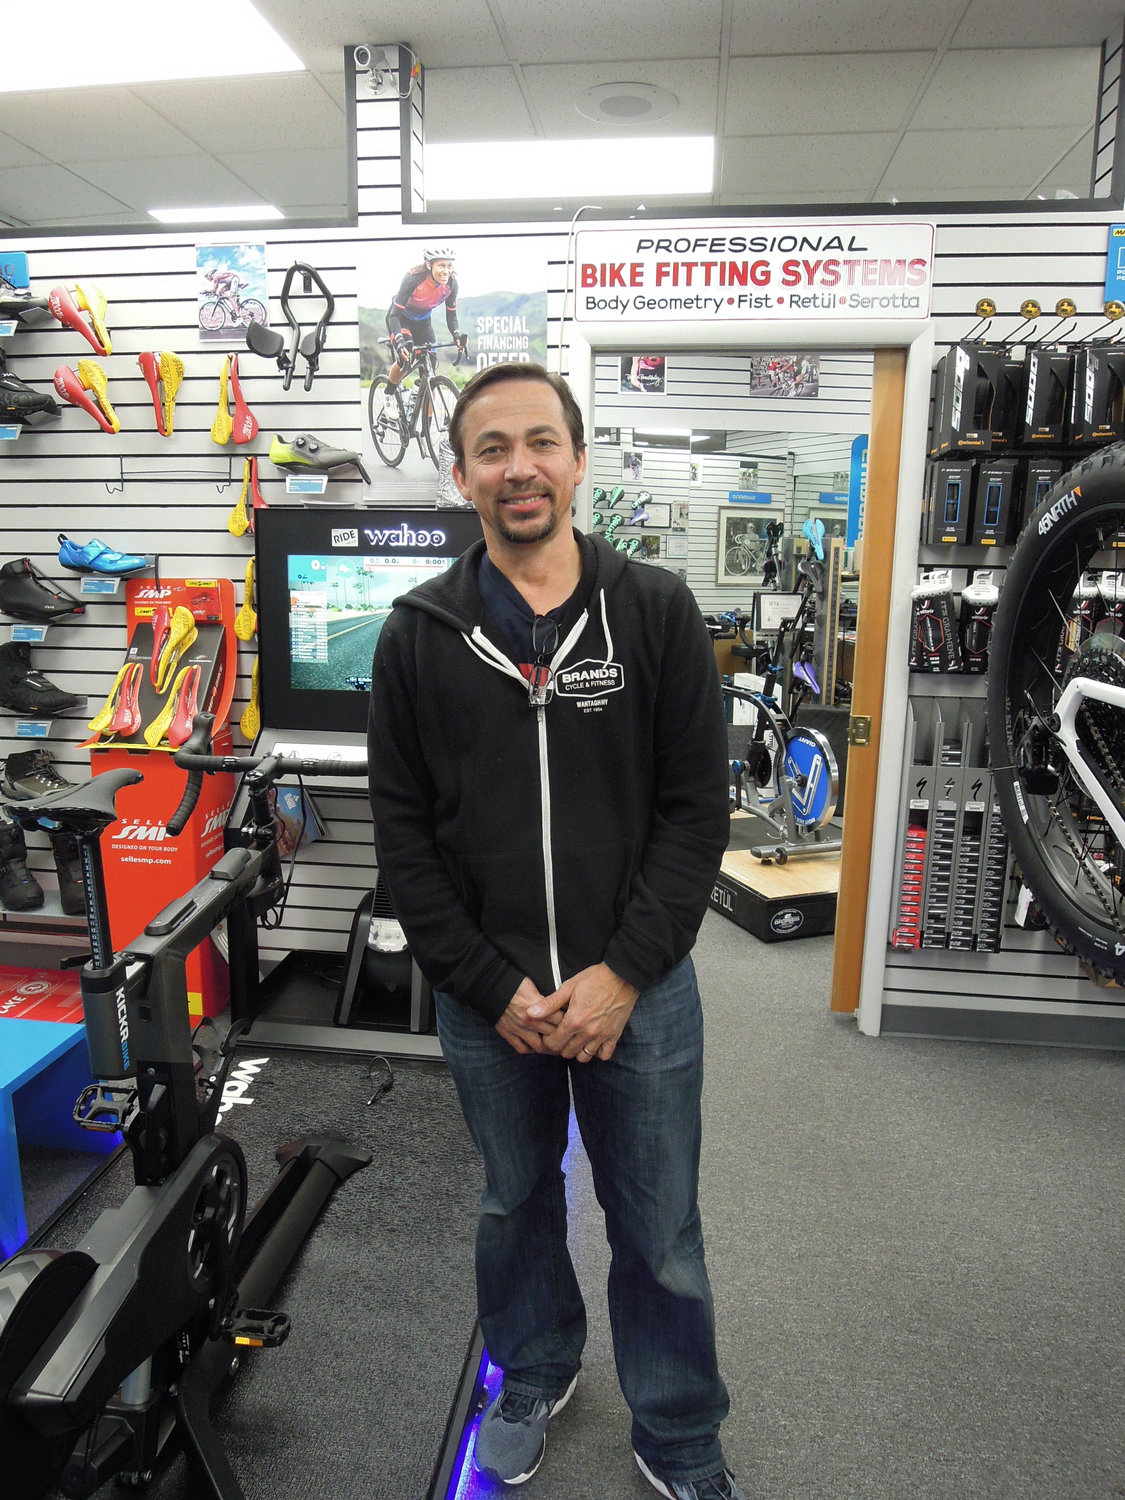 Byron James, one of the managers at Brands Cycle & Fitness, said his store has benefited from its strategic partnership with Amazon.com.